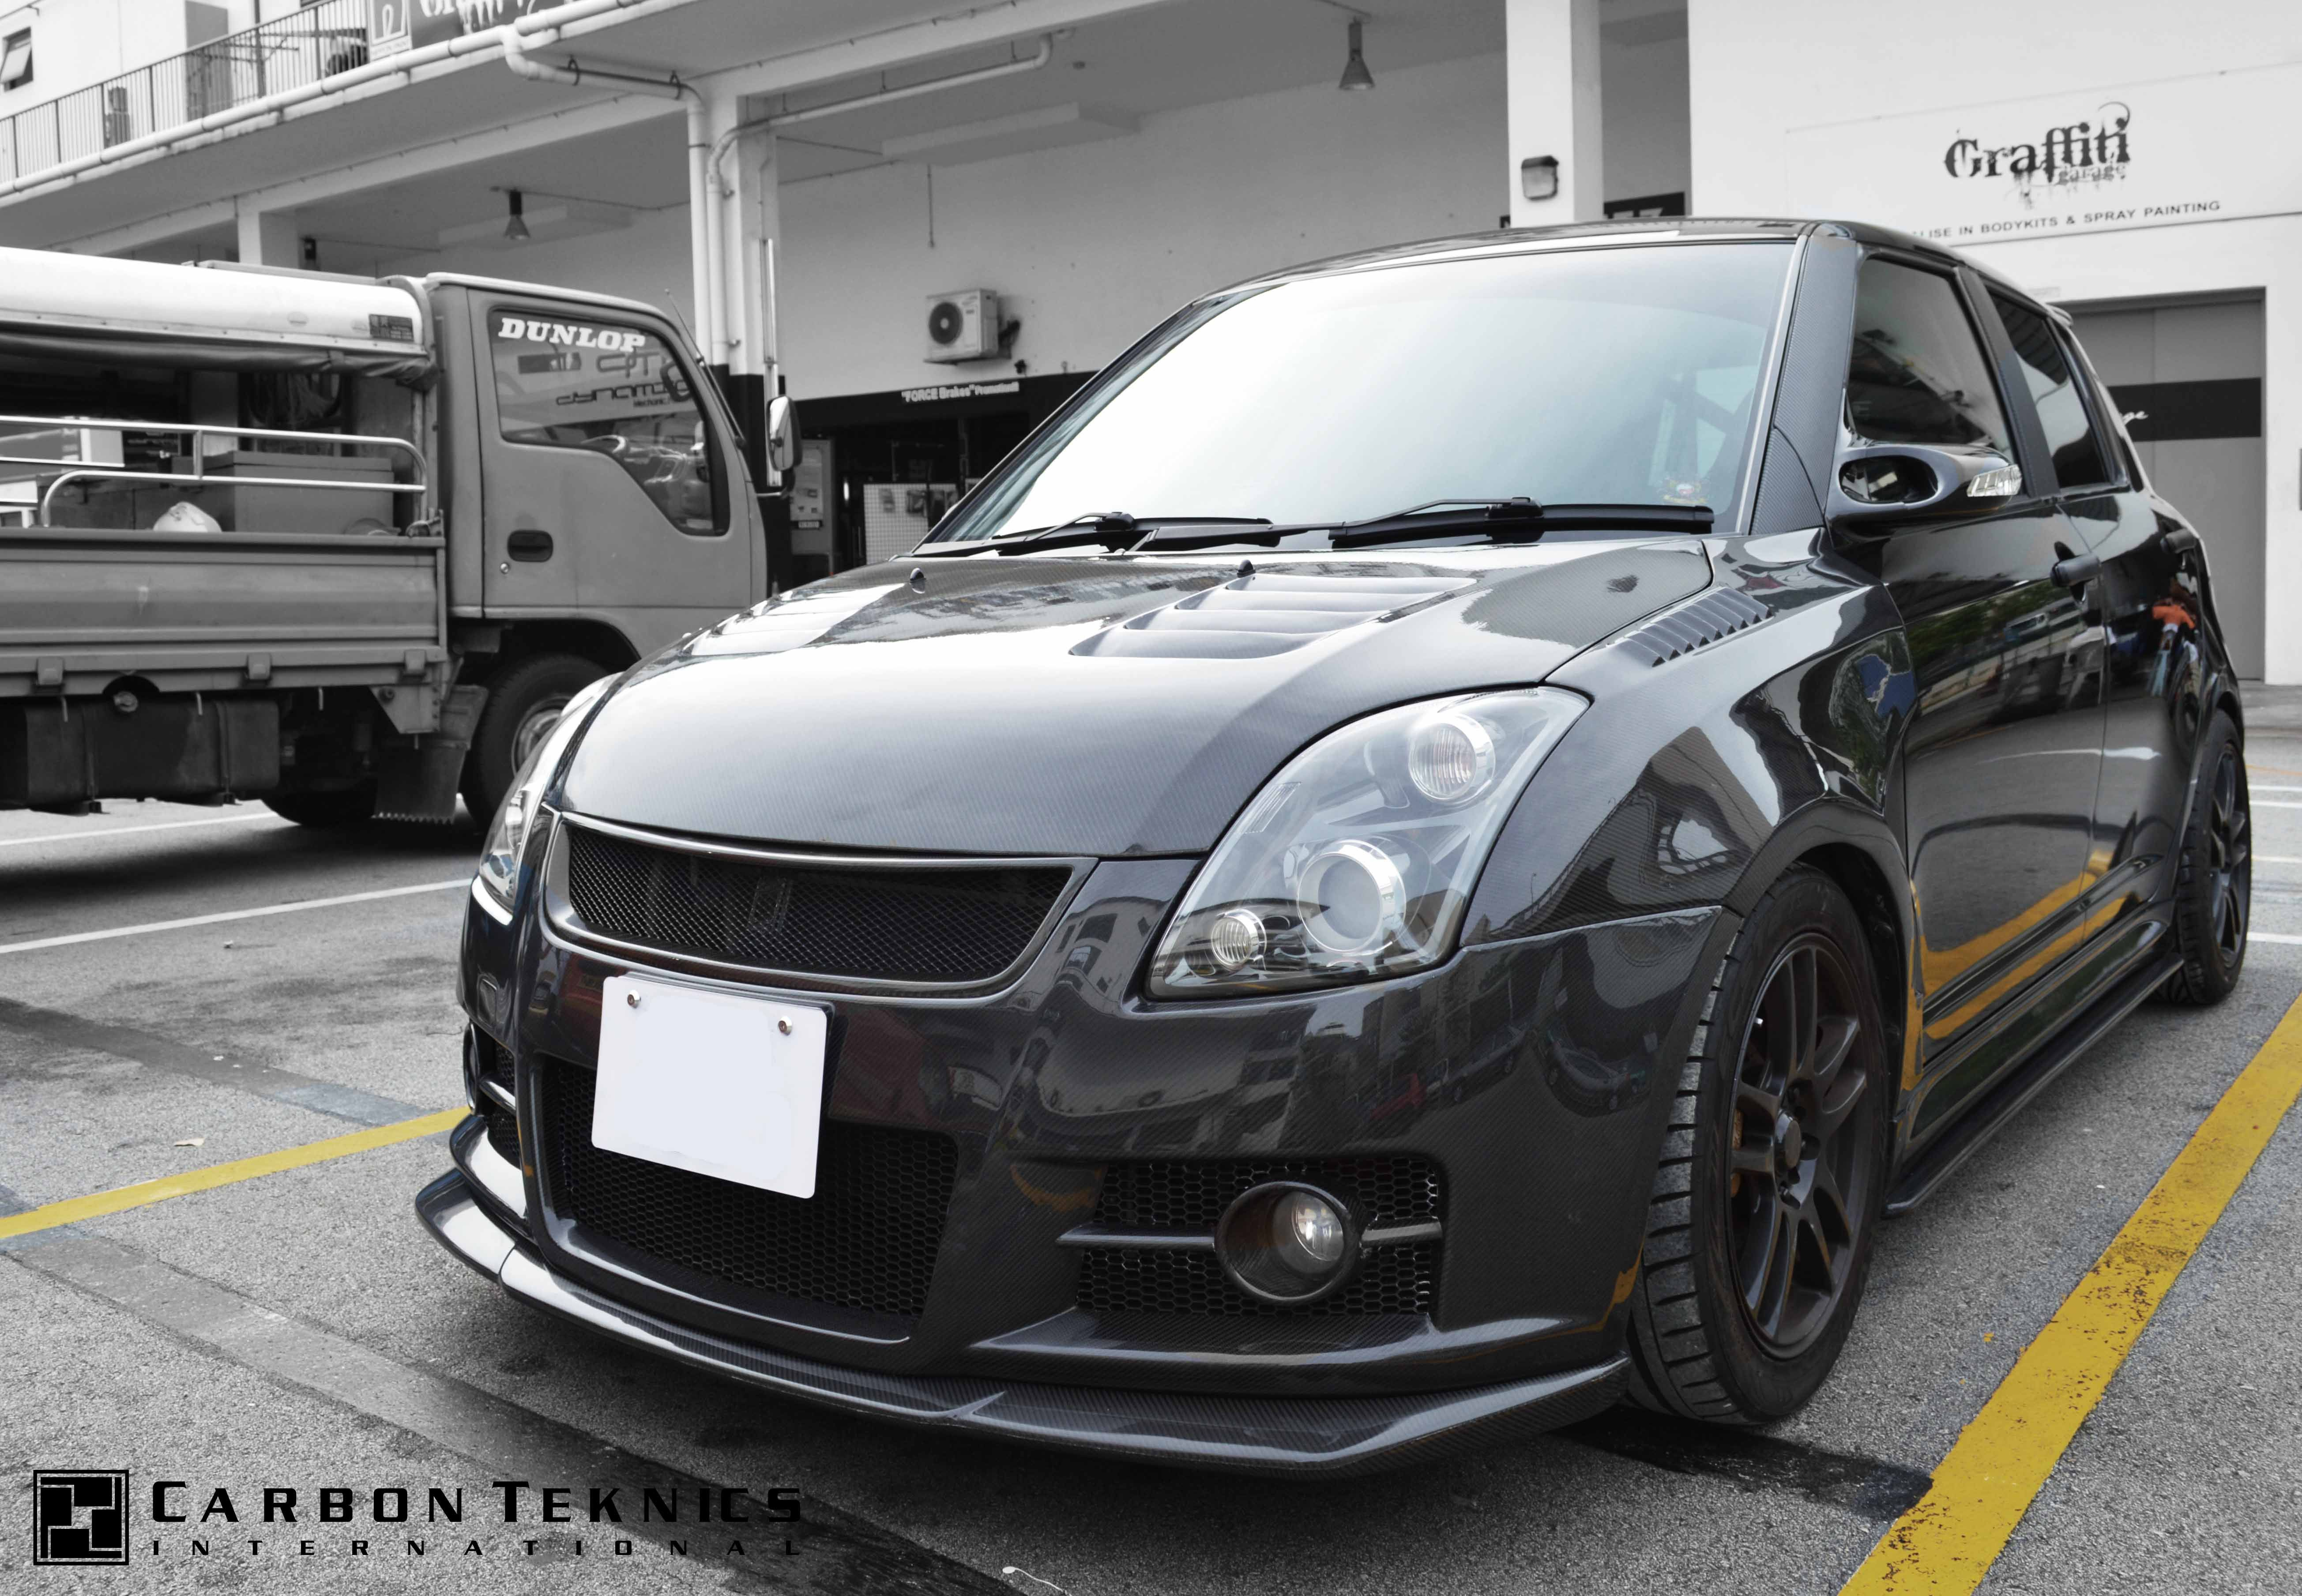 July 2014 Full Carbon Swift Sports With Tm Style Carbon Fenders Cs Style Carbon Hood And Many Other Parts Picture 06 Suzuki Swift Sport Suzuki Swift Suzuki